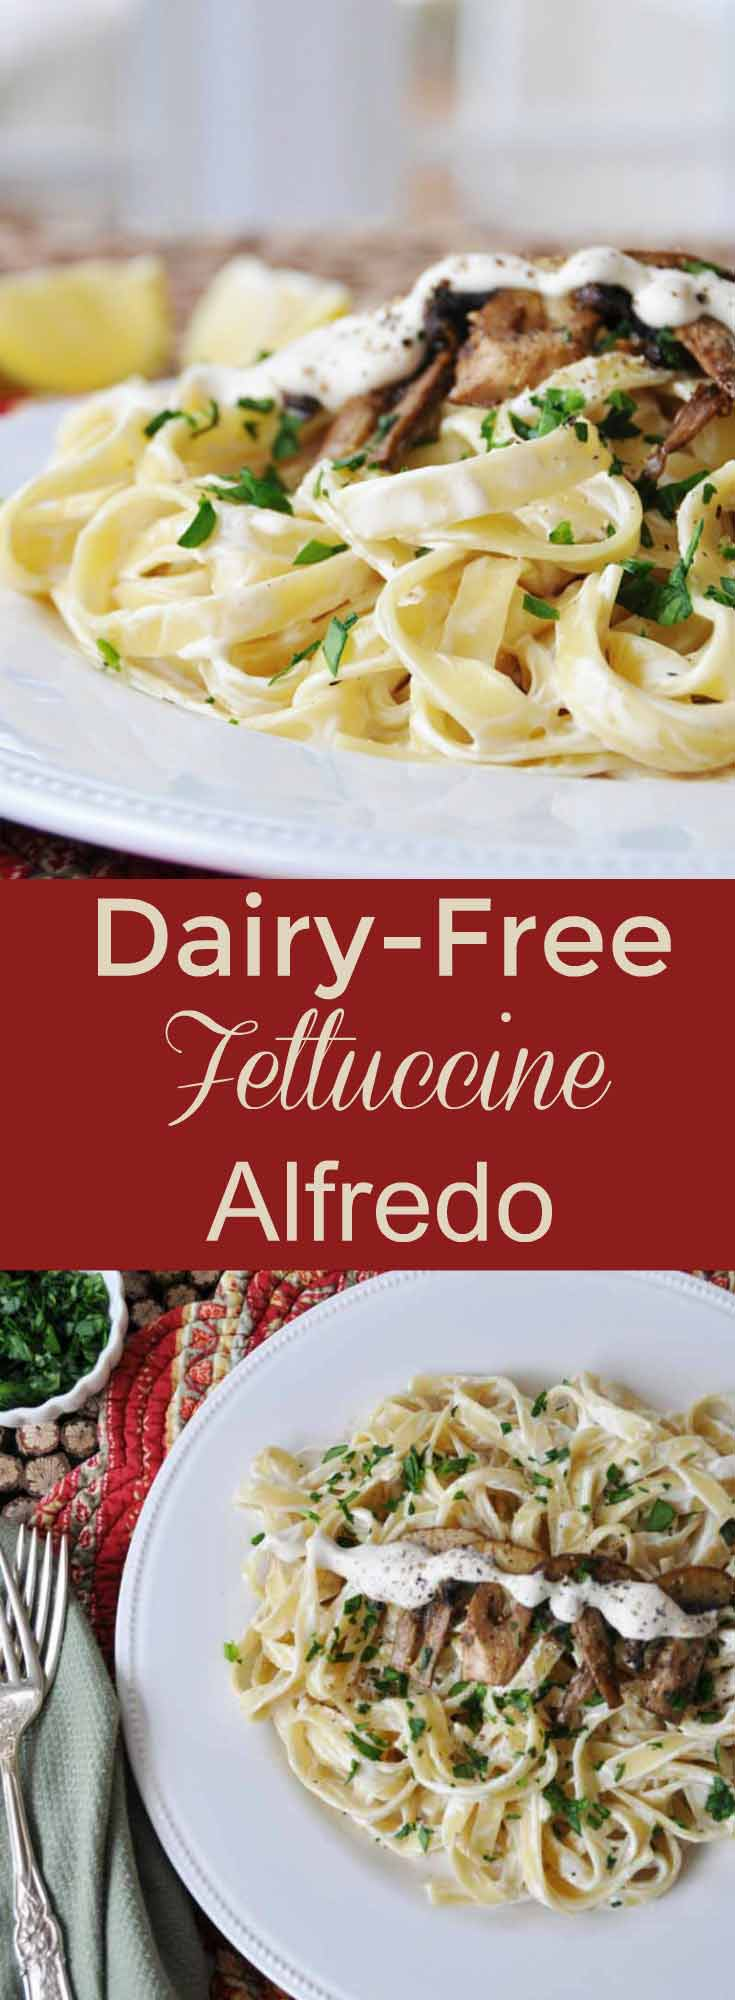 Rich and creamy dairy-free vegan fettuccine Alfredo recipe! This will make non-vegans swoon and ask for seconds! www.veganosity.com